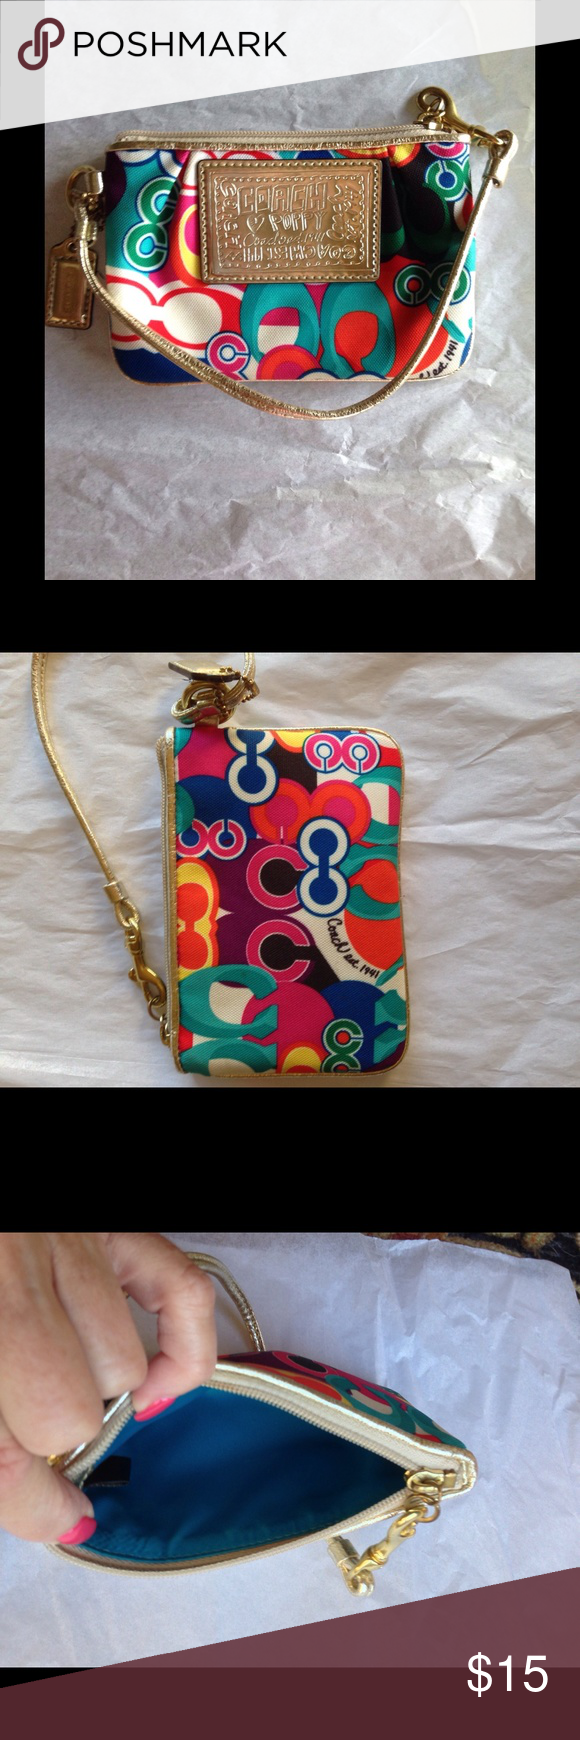 Coach Poppy Glam C Wristlet, Colorful and Like New This wristlet from the Poppy collection is a bright little gem!  It features gold leather strap and trim and a brilliant turquoise sateen lining.  This item is like new and has no visible signs of wear.  Matches tote I also have listed. Coach Bags Clutches & Wristlets